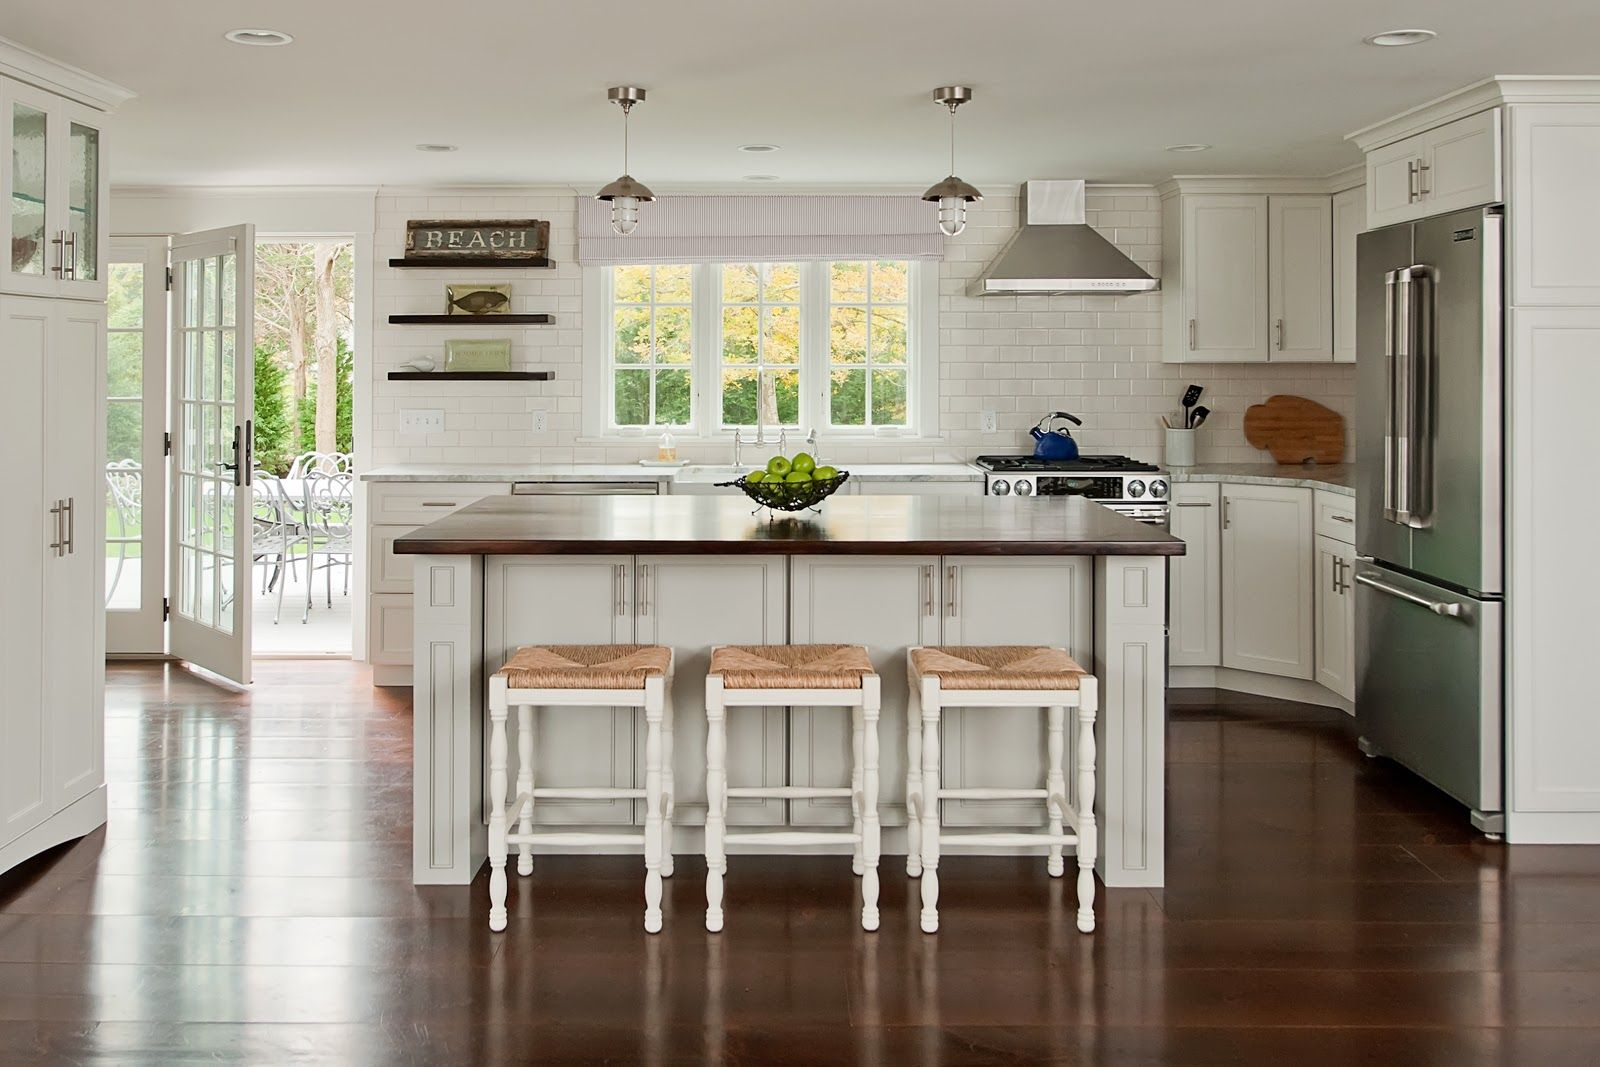 Small Cape Cod Kitchen Ideas White Can Be Very Hot! Sprinkle In